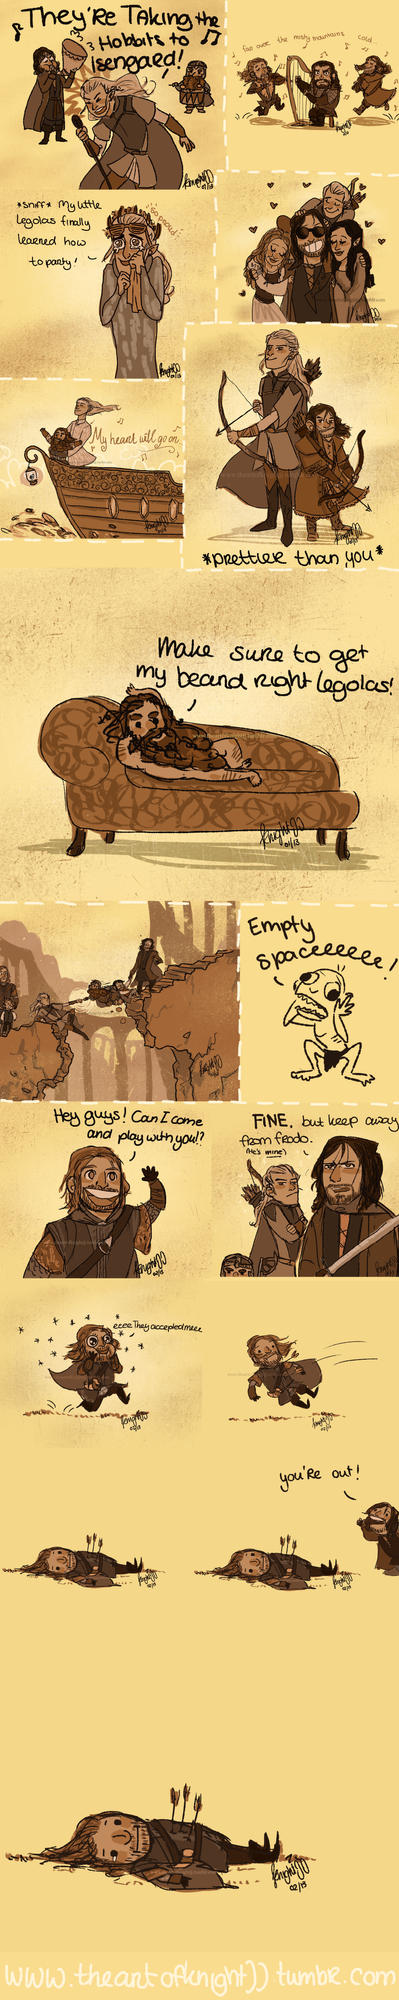 Hobbit/lotr tumblr dump 2! by knightJJ